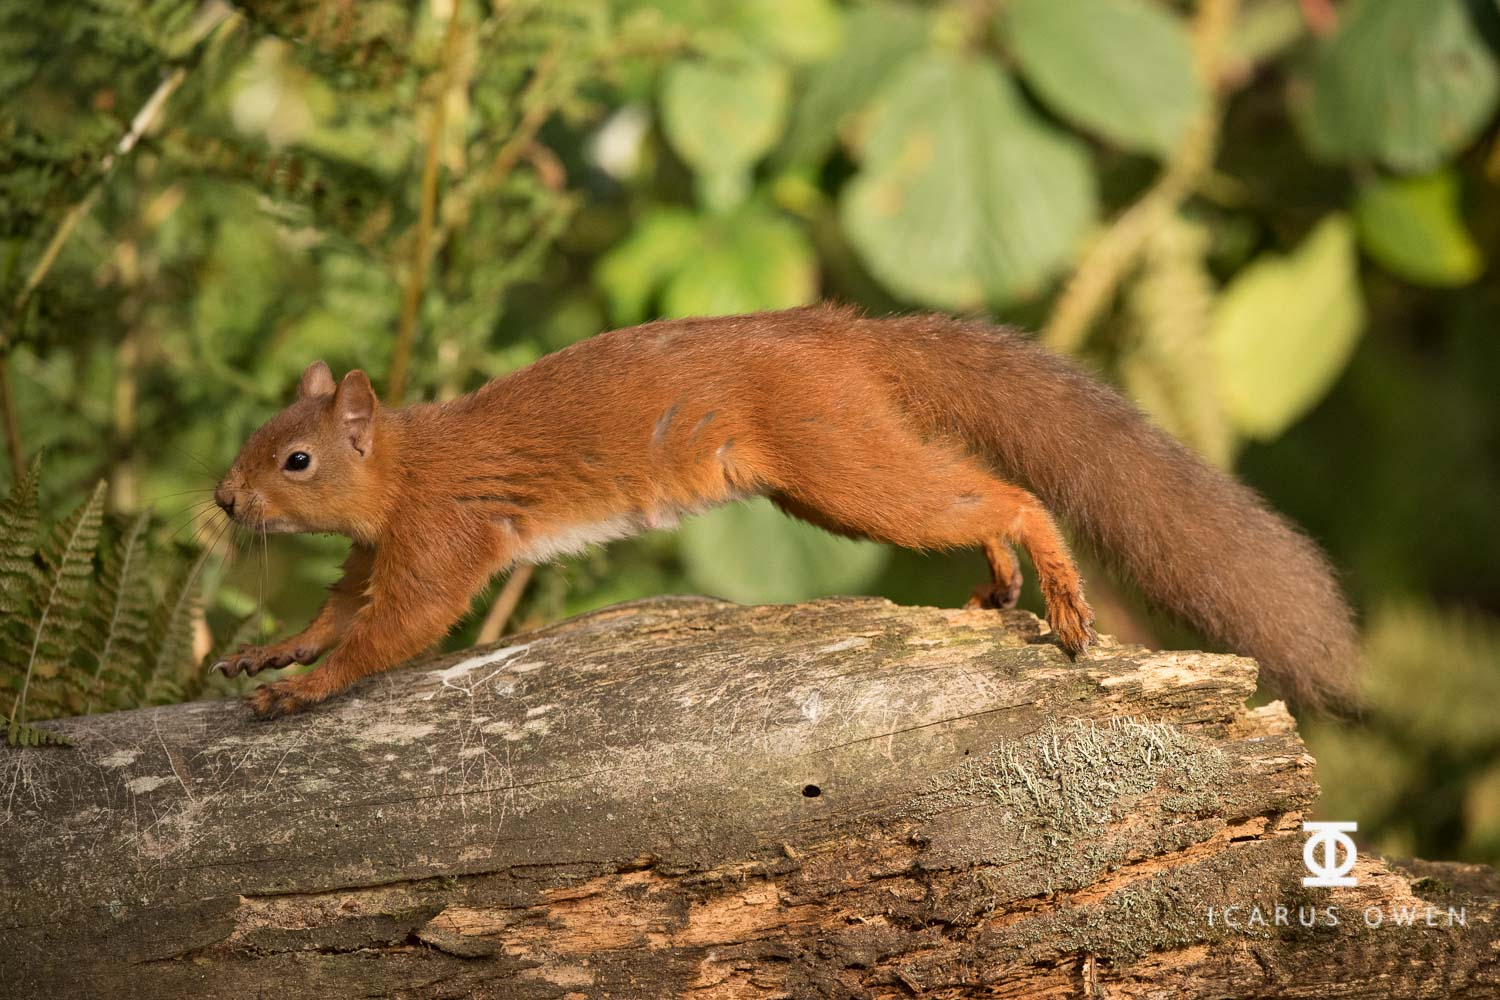 Red squirrel leaping onto log, Aberdeenshire.